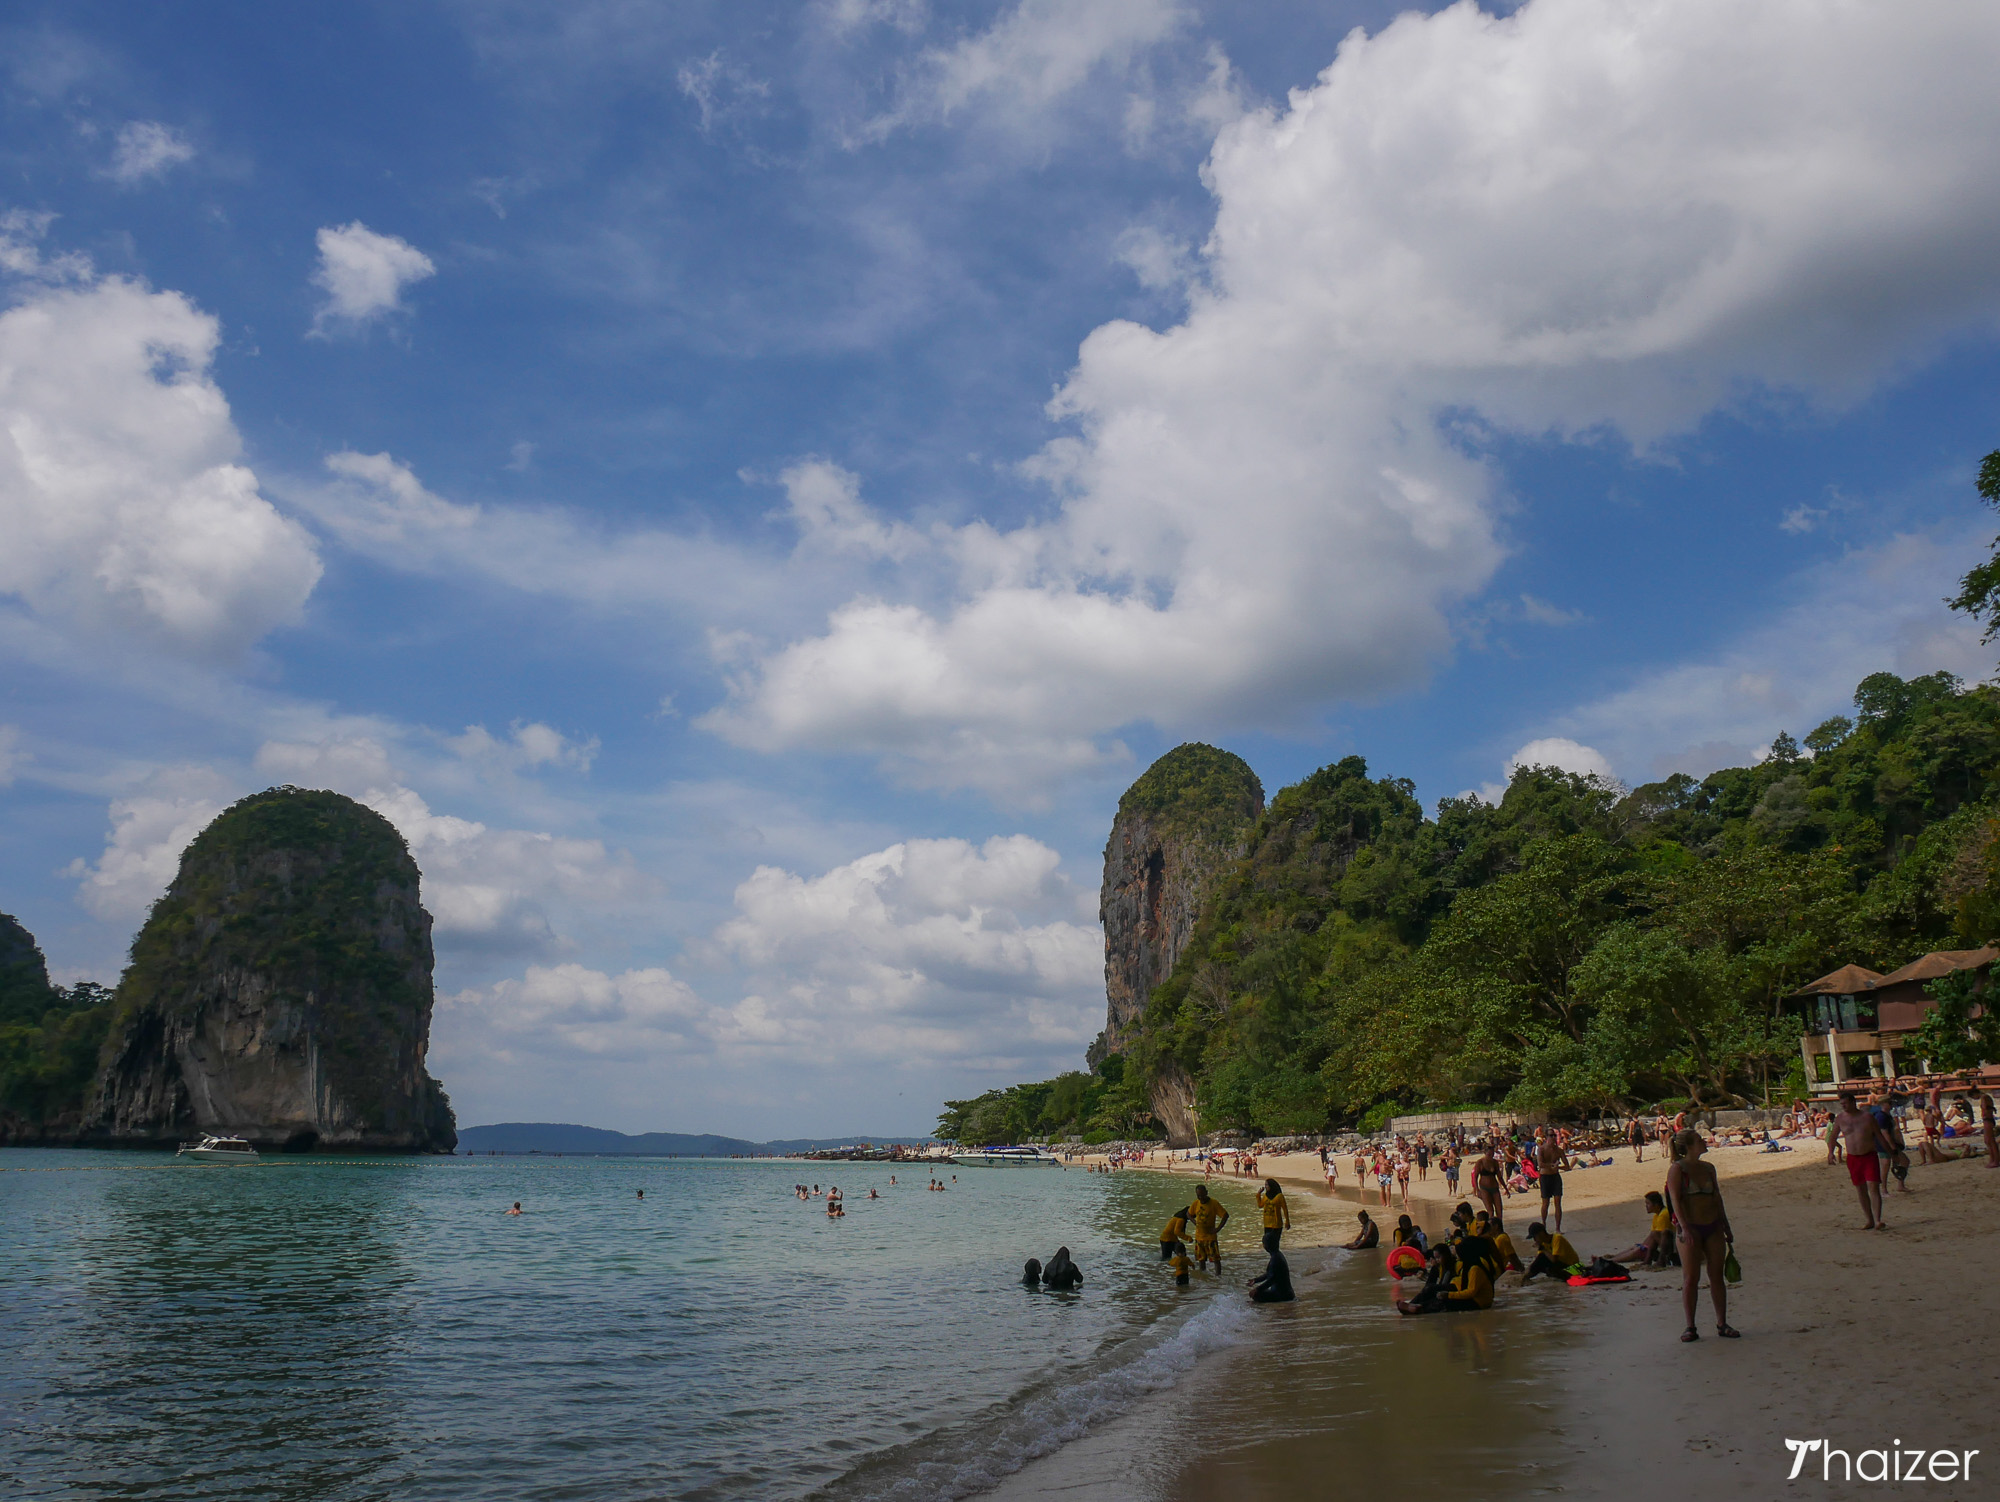 view of Phra Nang Beach looking from the cave